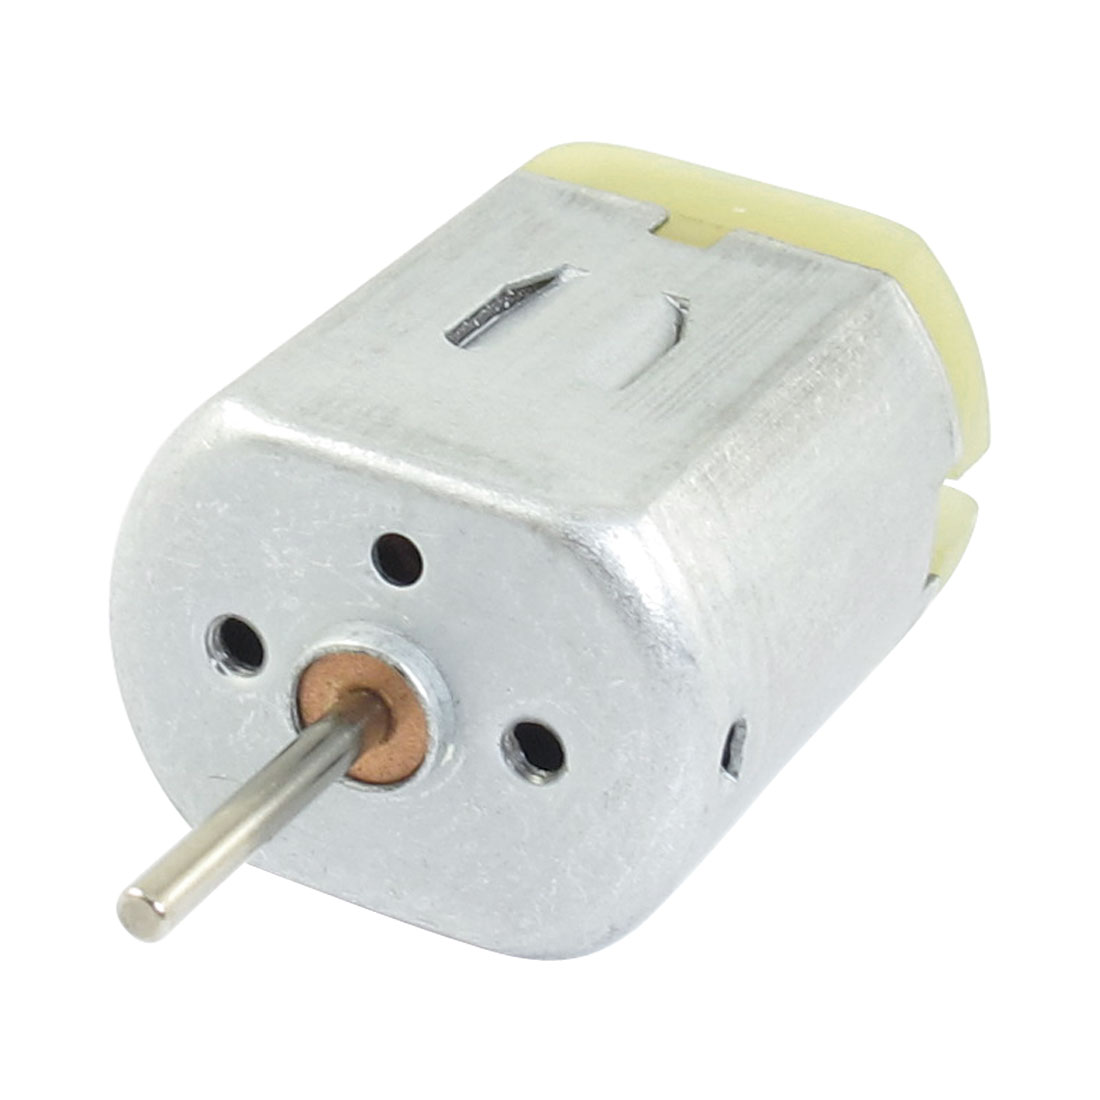 DC 5V 0.15A 4200RPM Rotary Speed 2 Pin Electric Magnetic Motor